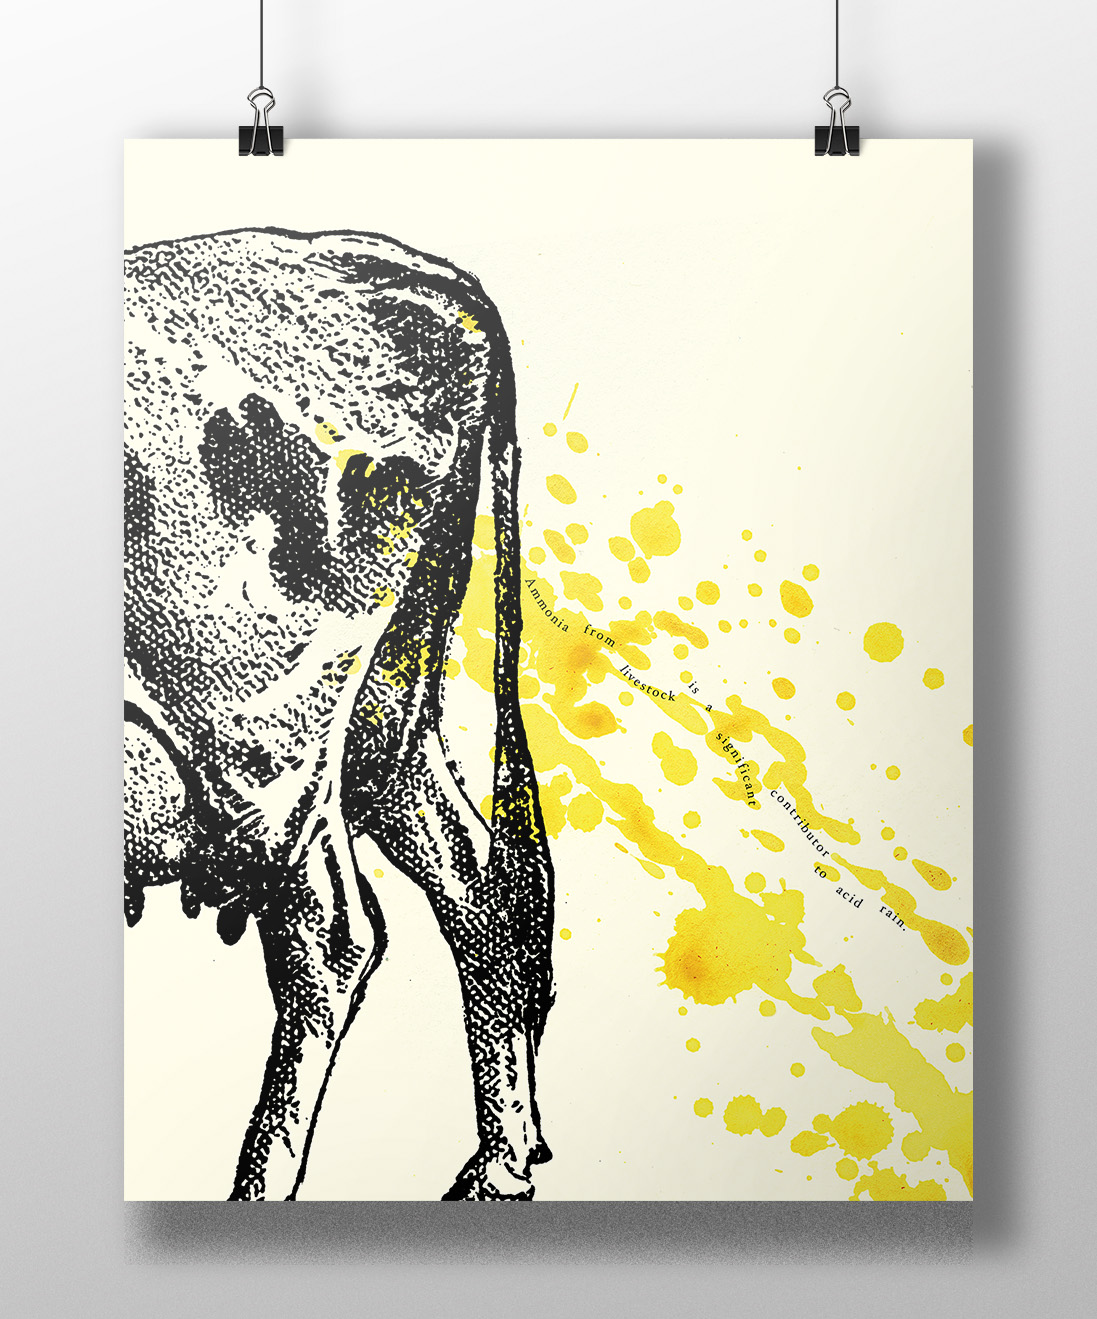 Sustainability Poster—Peeing Cow